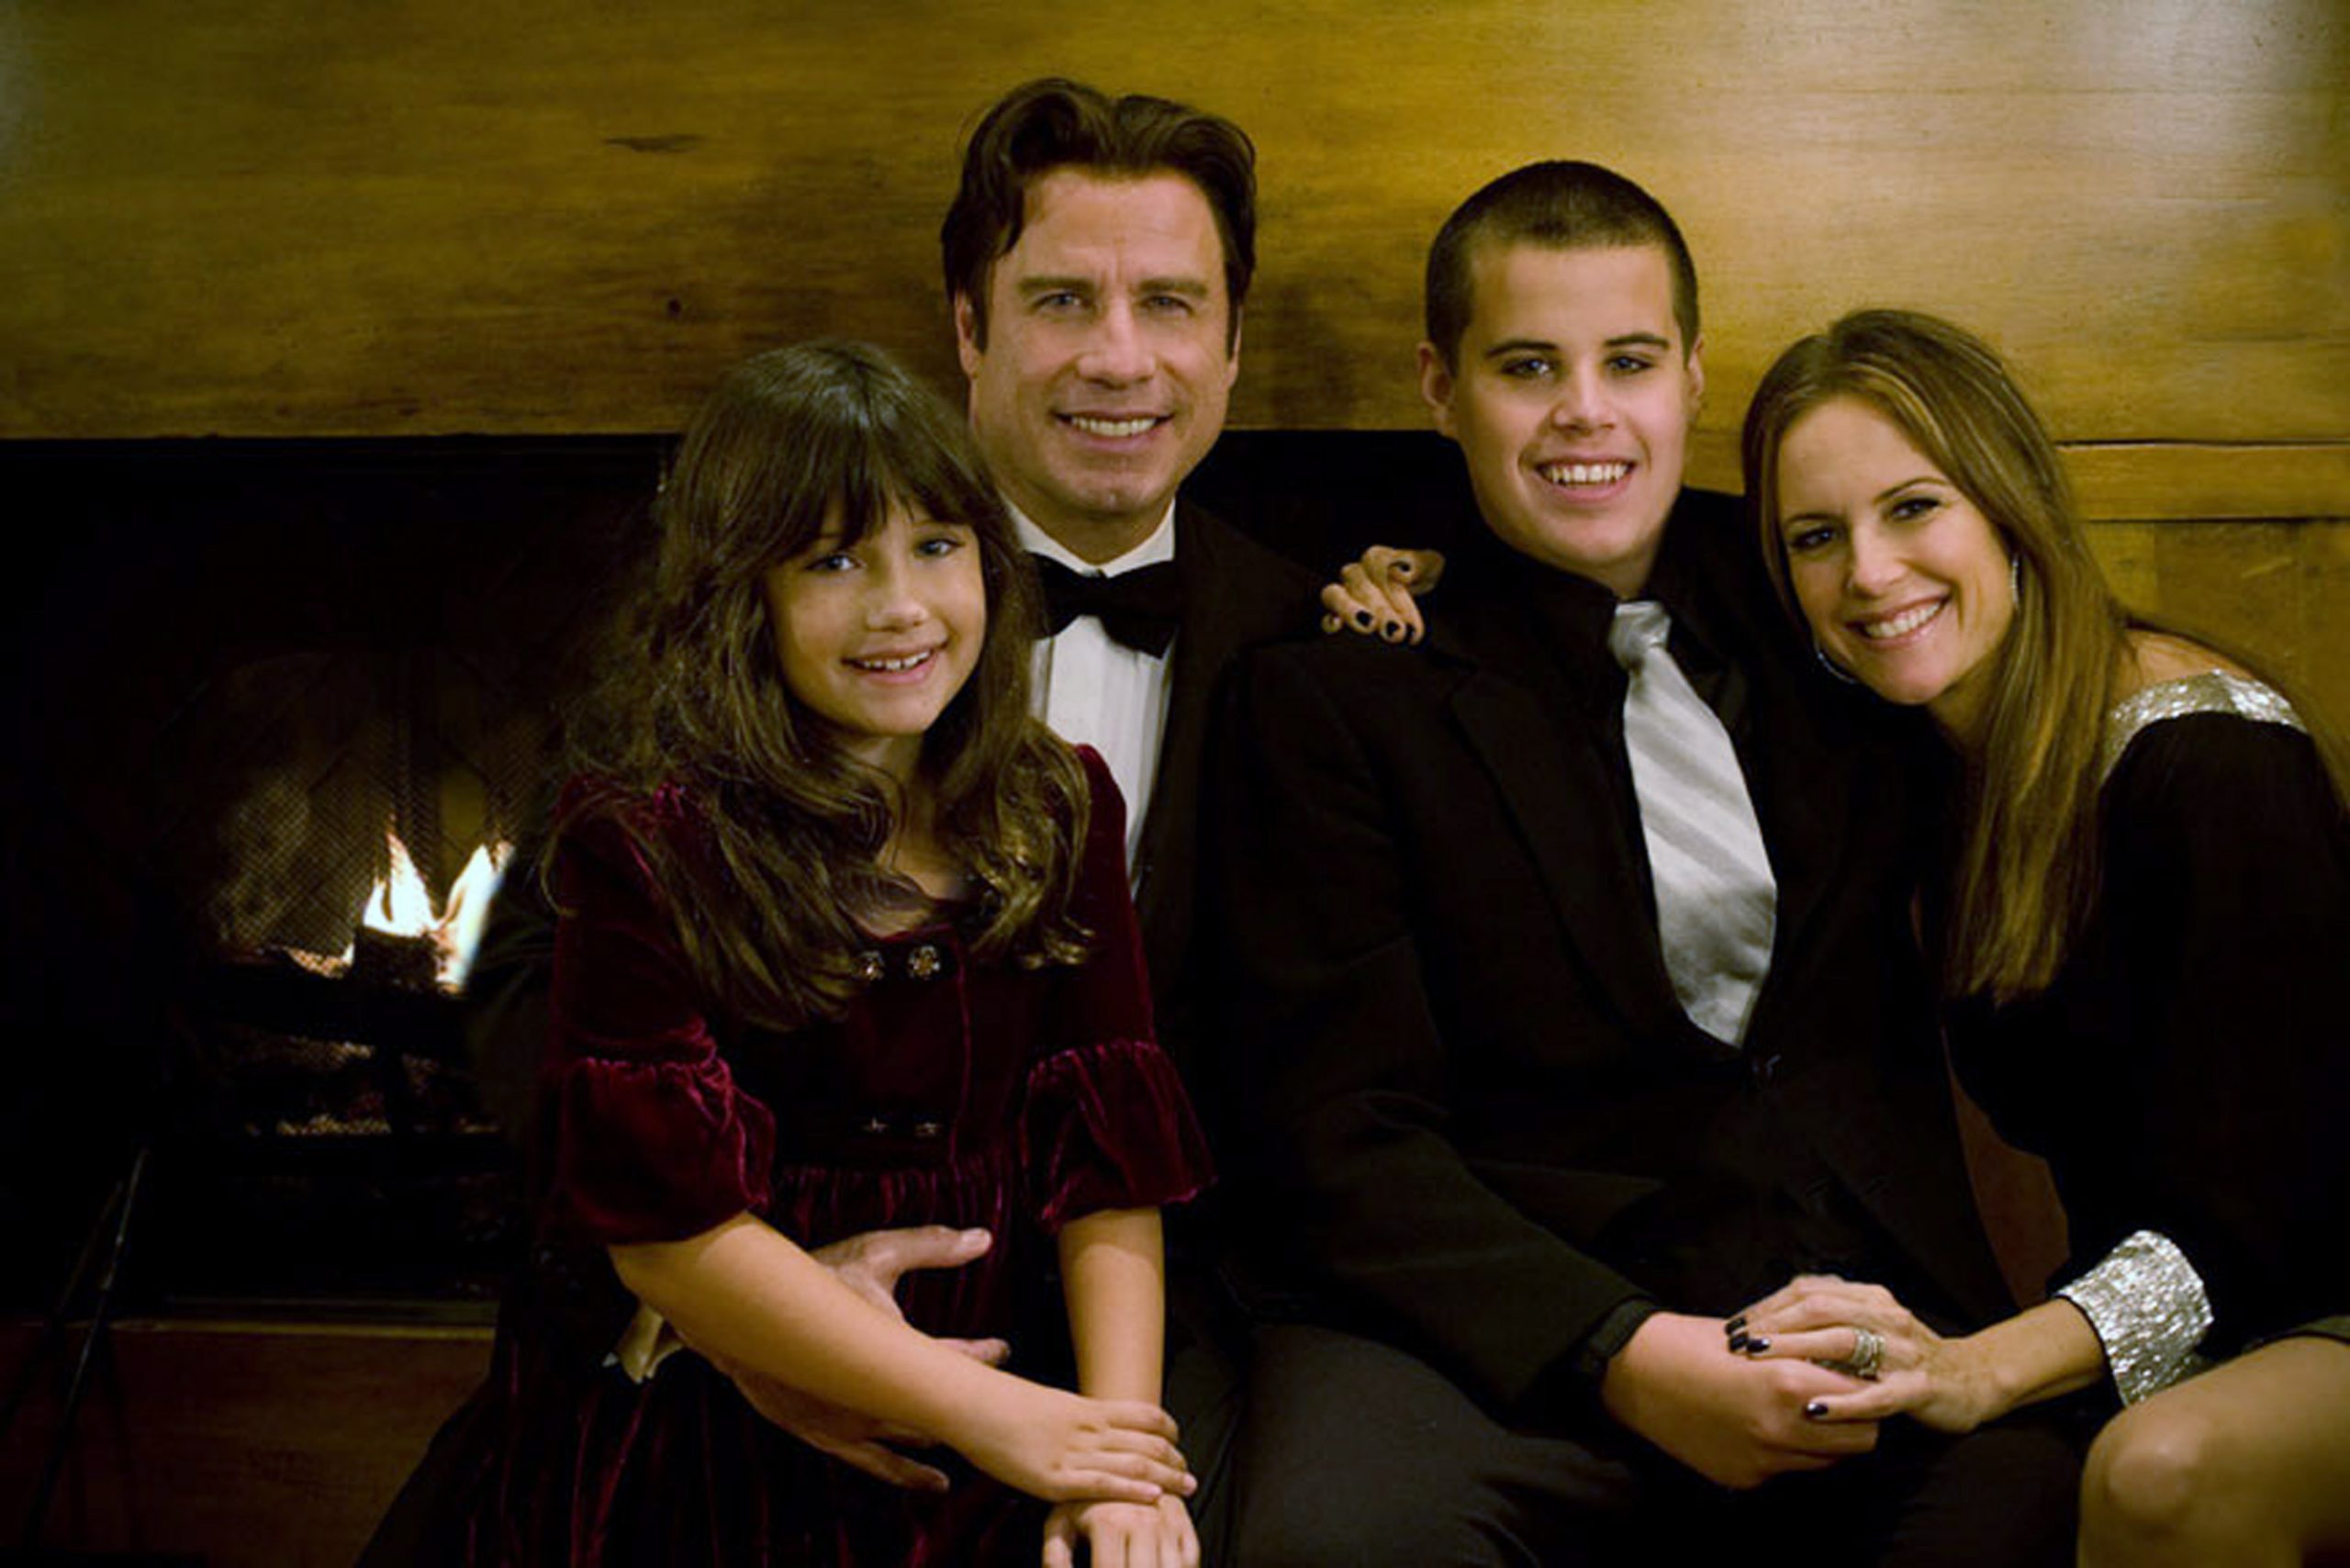 John Travolta and Kelly Preston family